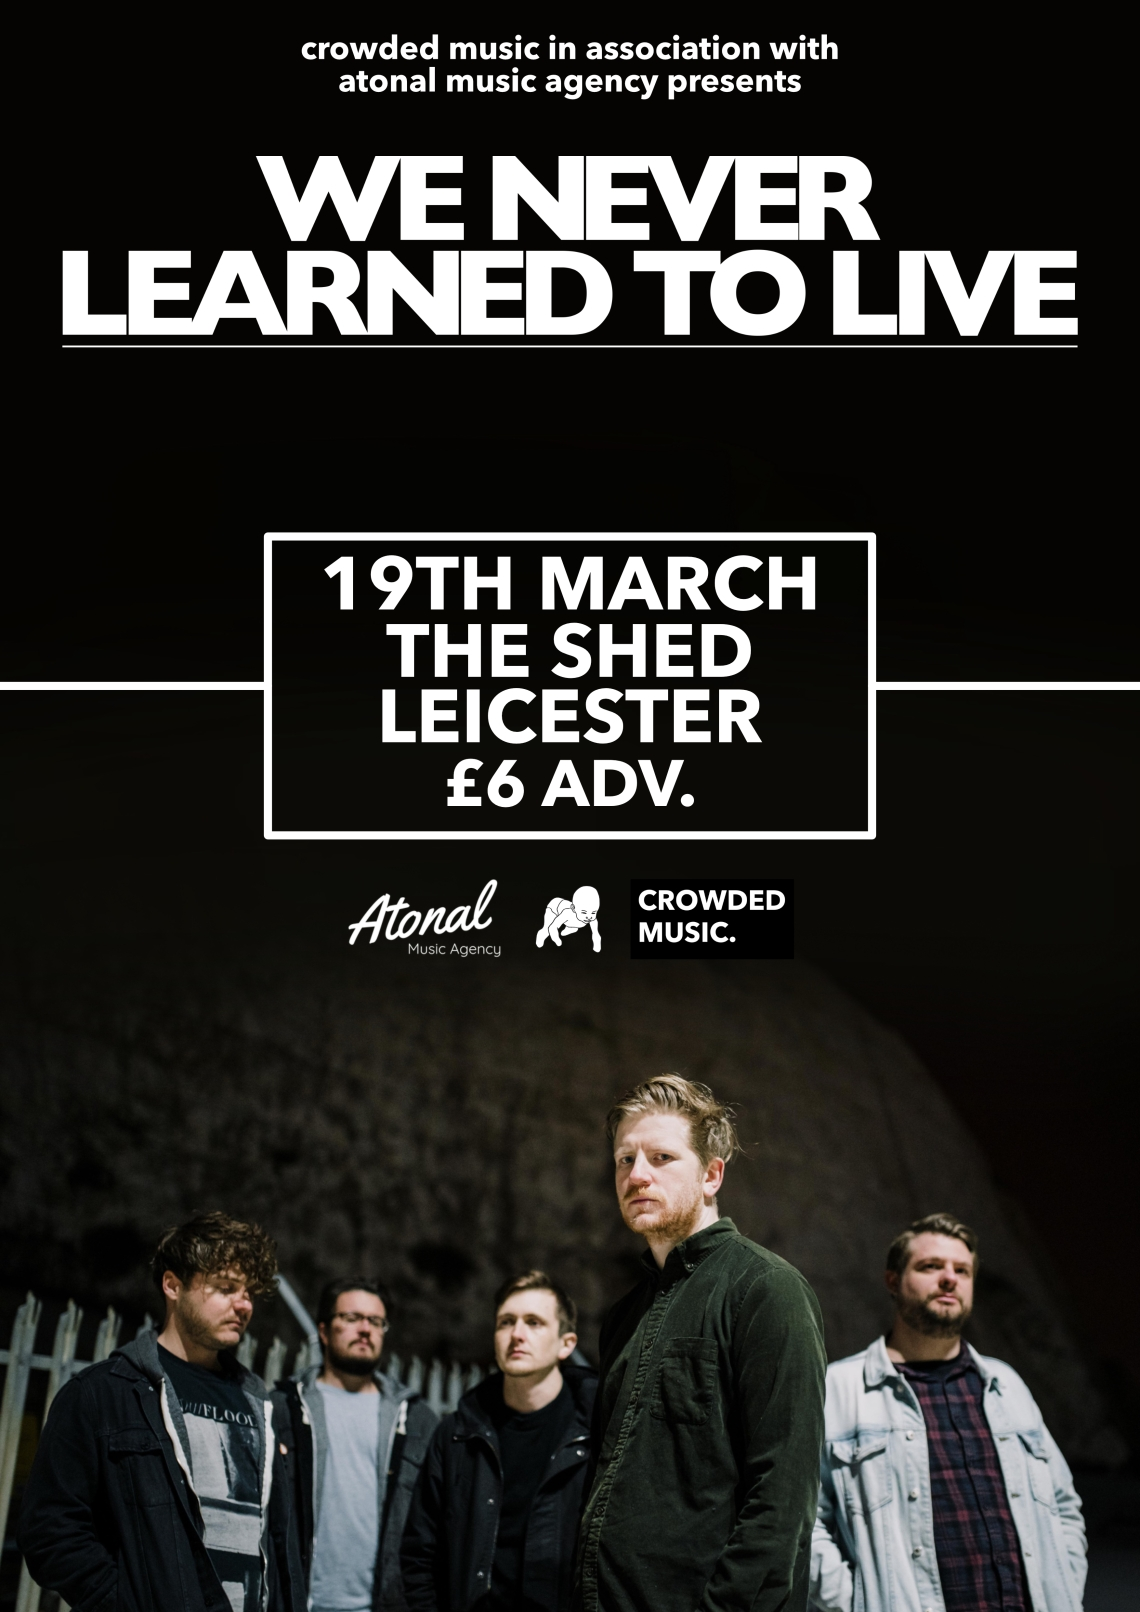 We Never Learned To Live 19:3:20 Poster